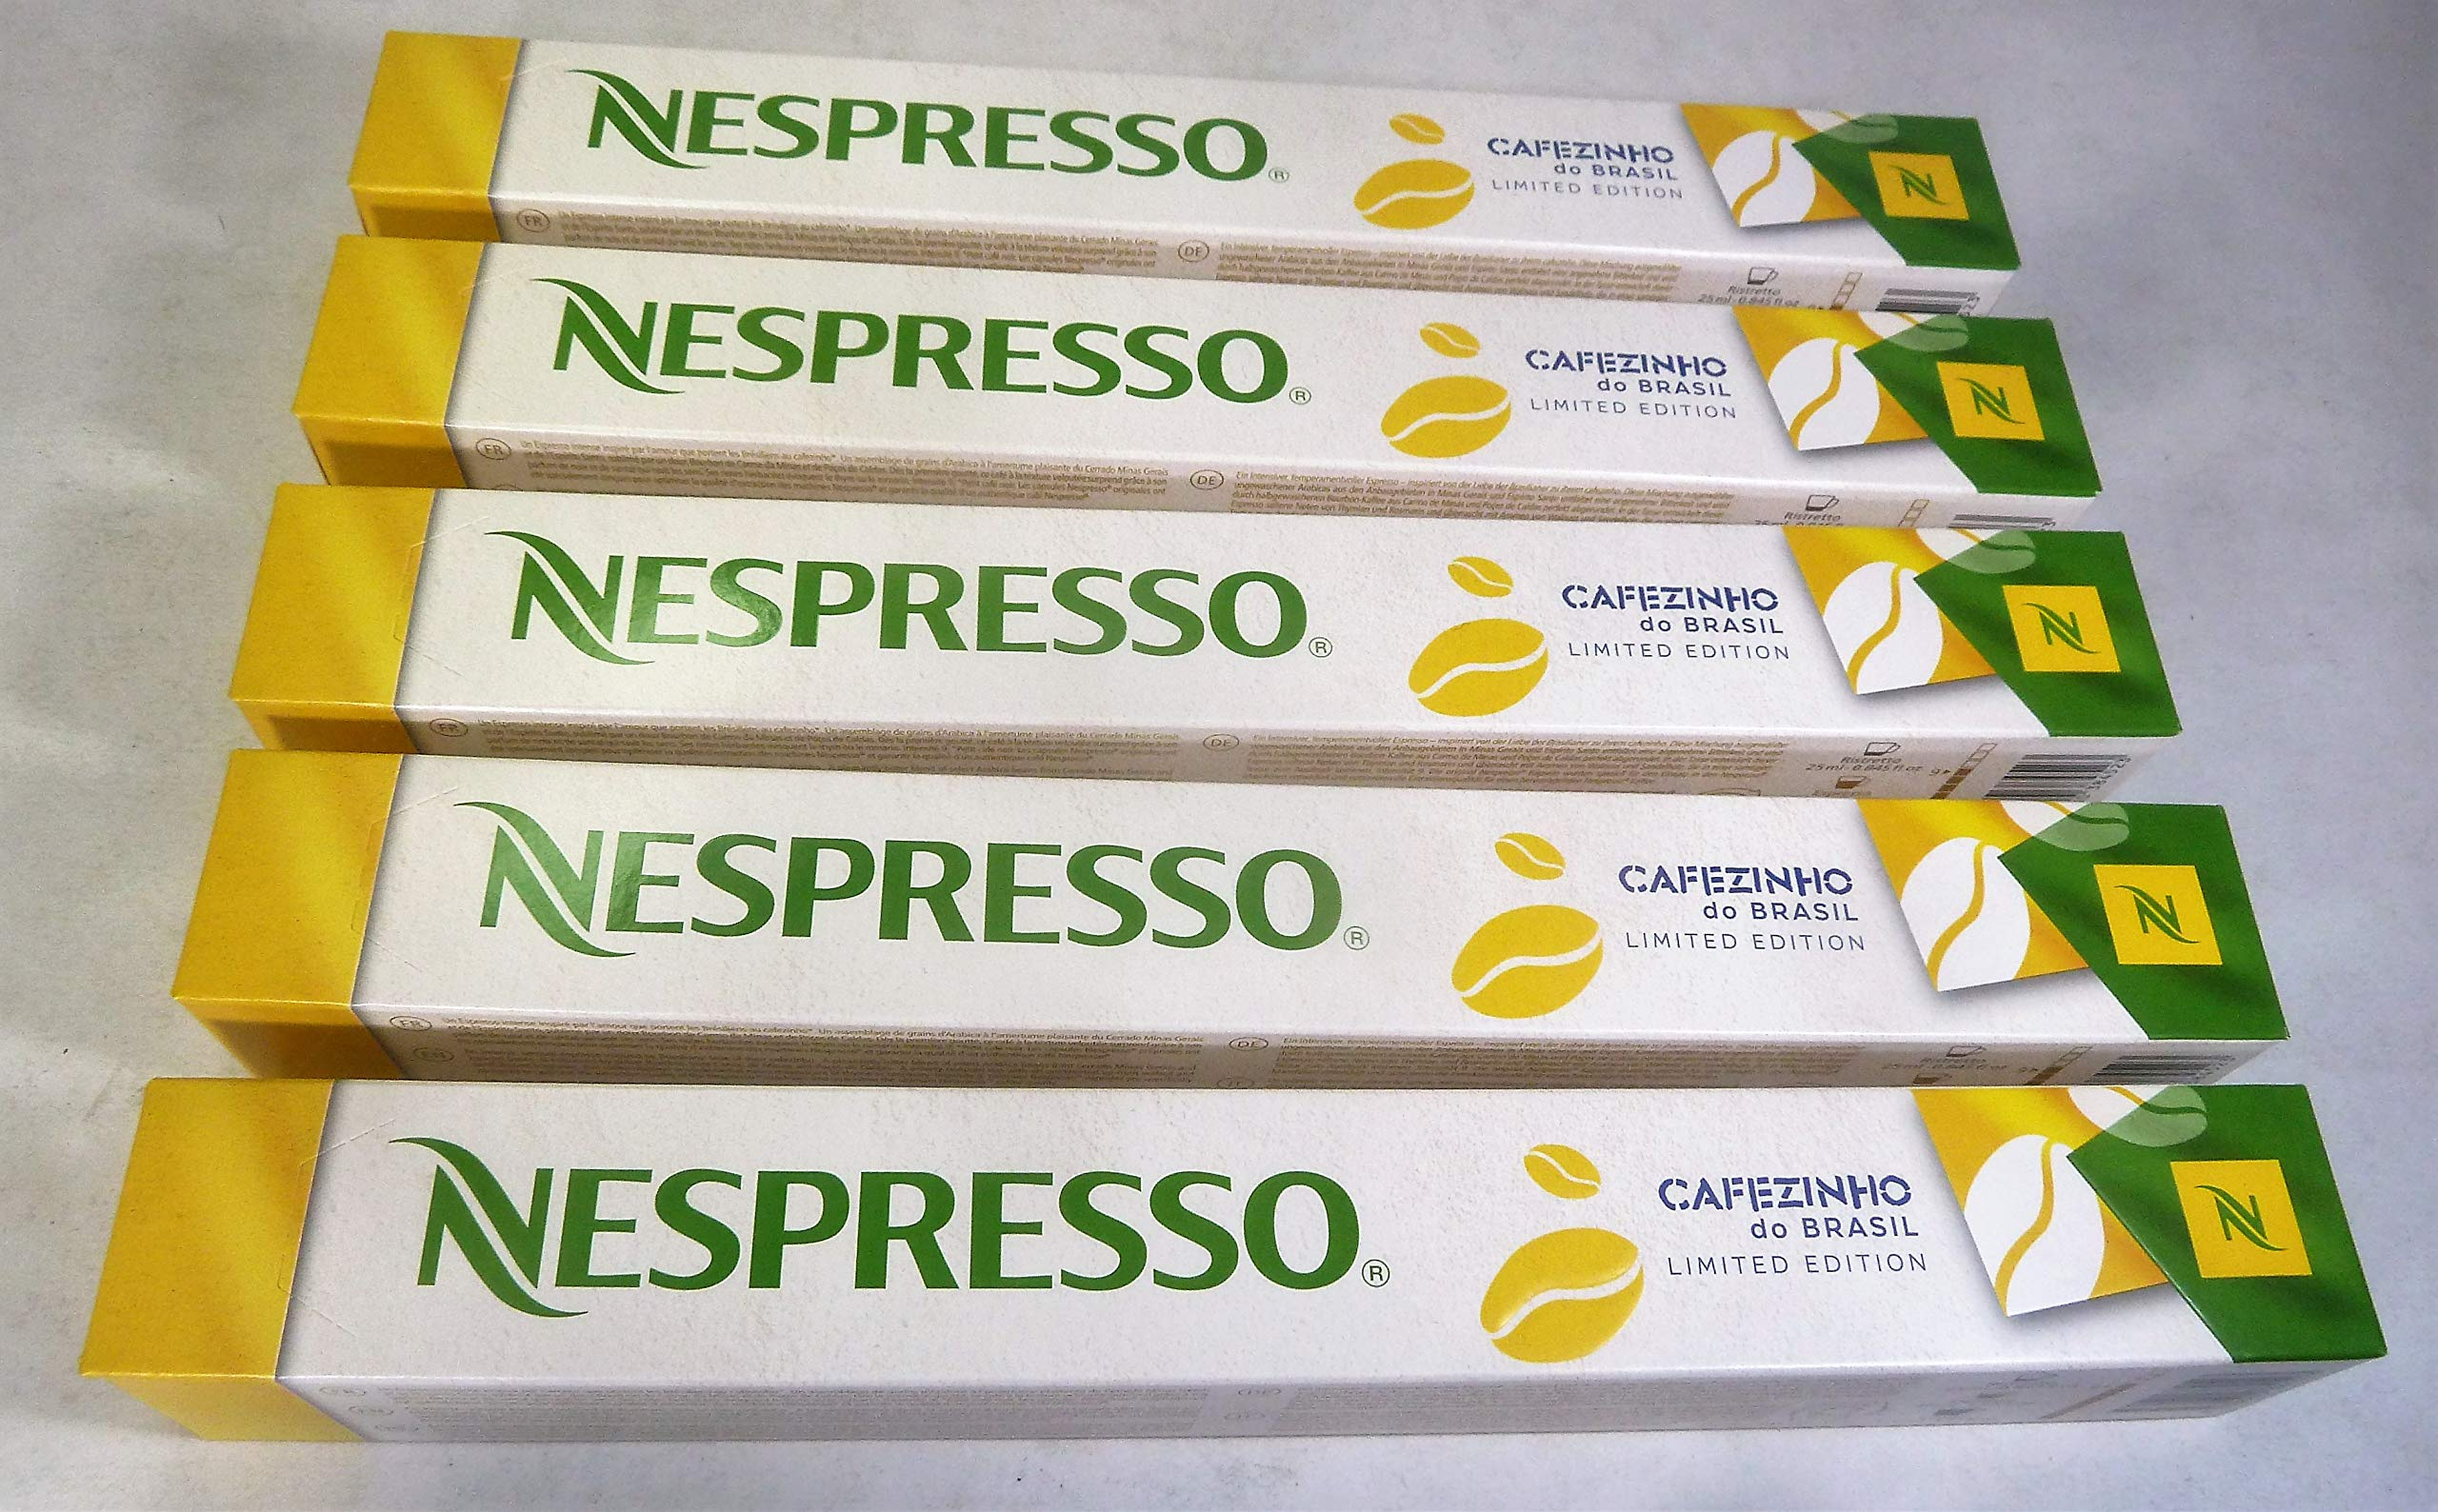 Nespresso Limited Edition CAFEZINHO DO Brasil 5 Sleeve (50 Capsules) NOT COMPATIBLE WITH VERTUOLINE by Nestle Nespresso